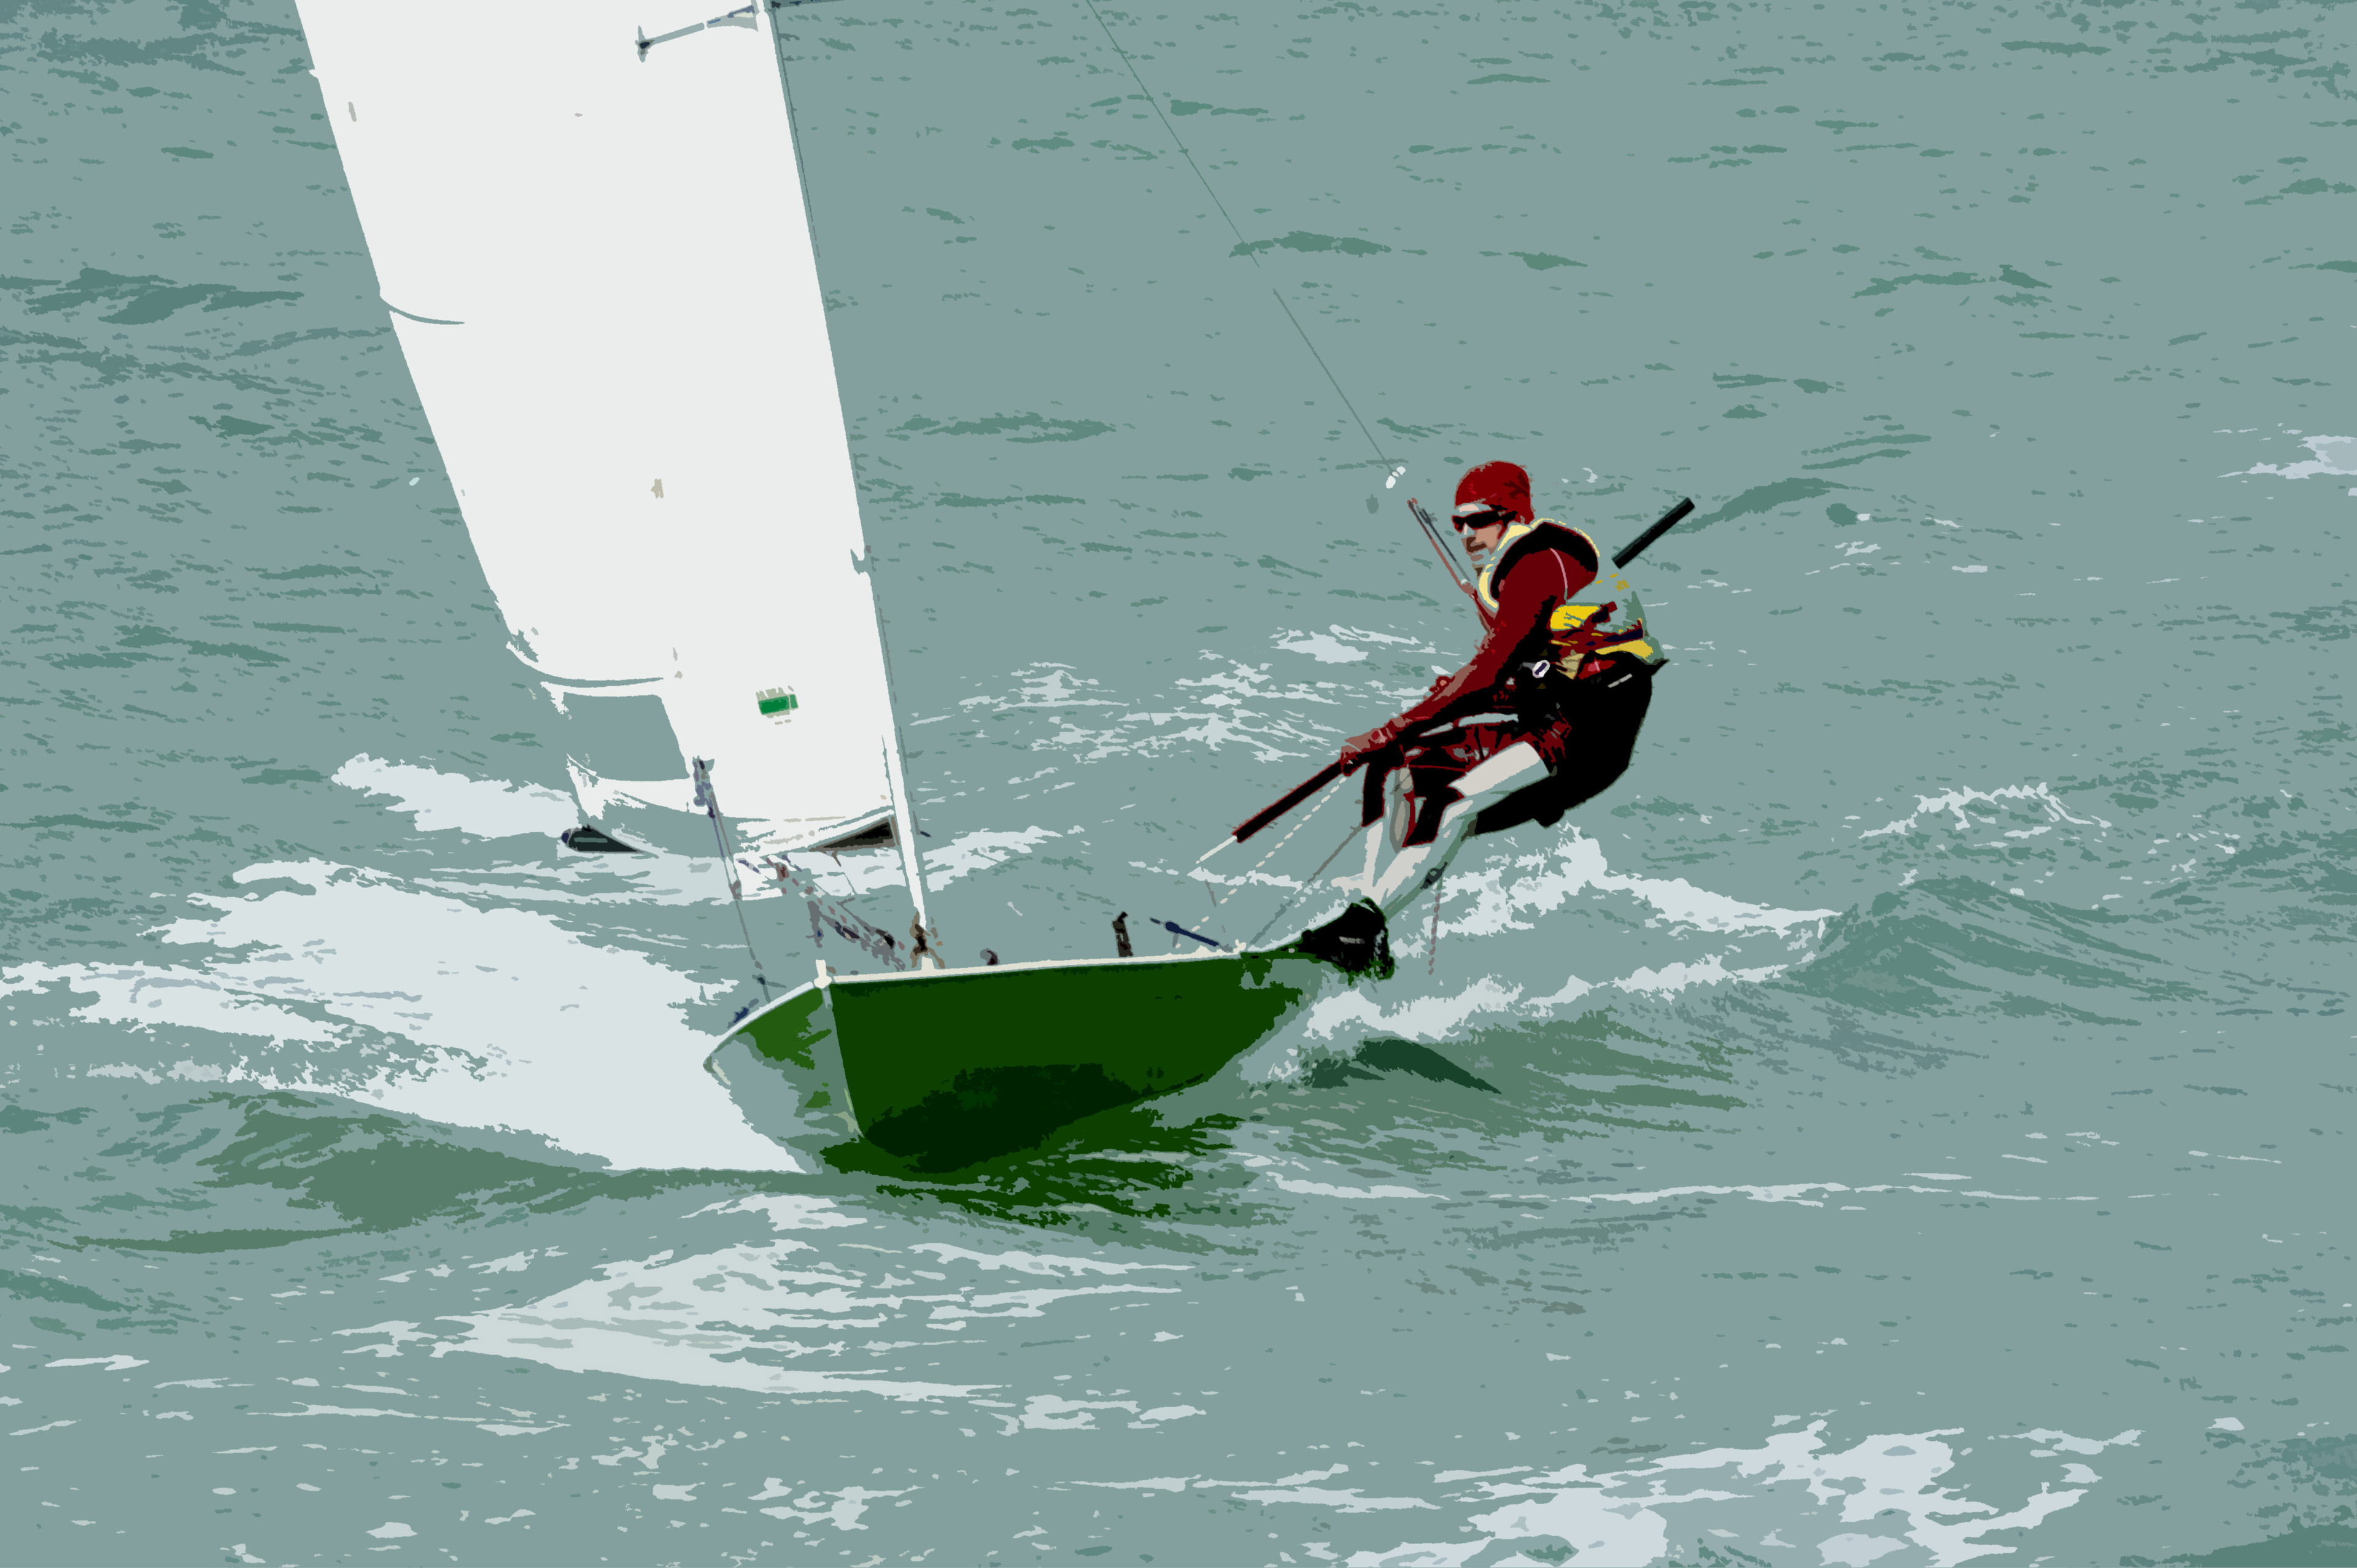 Man out sailing on a small sailboat using a trapeze to counterbalance his weight with the sail as he leans out over the ocean